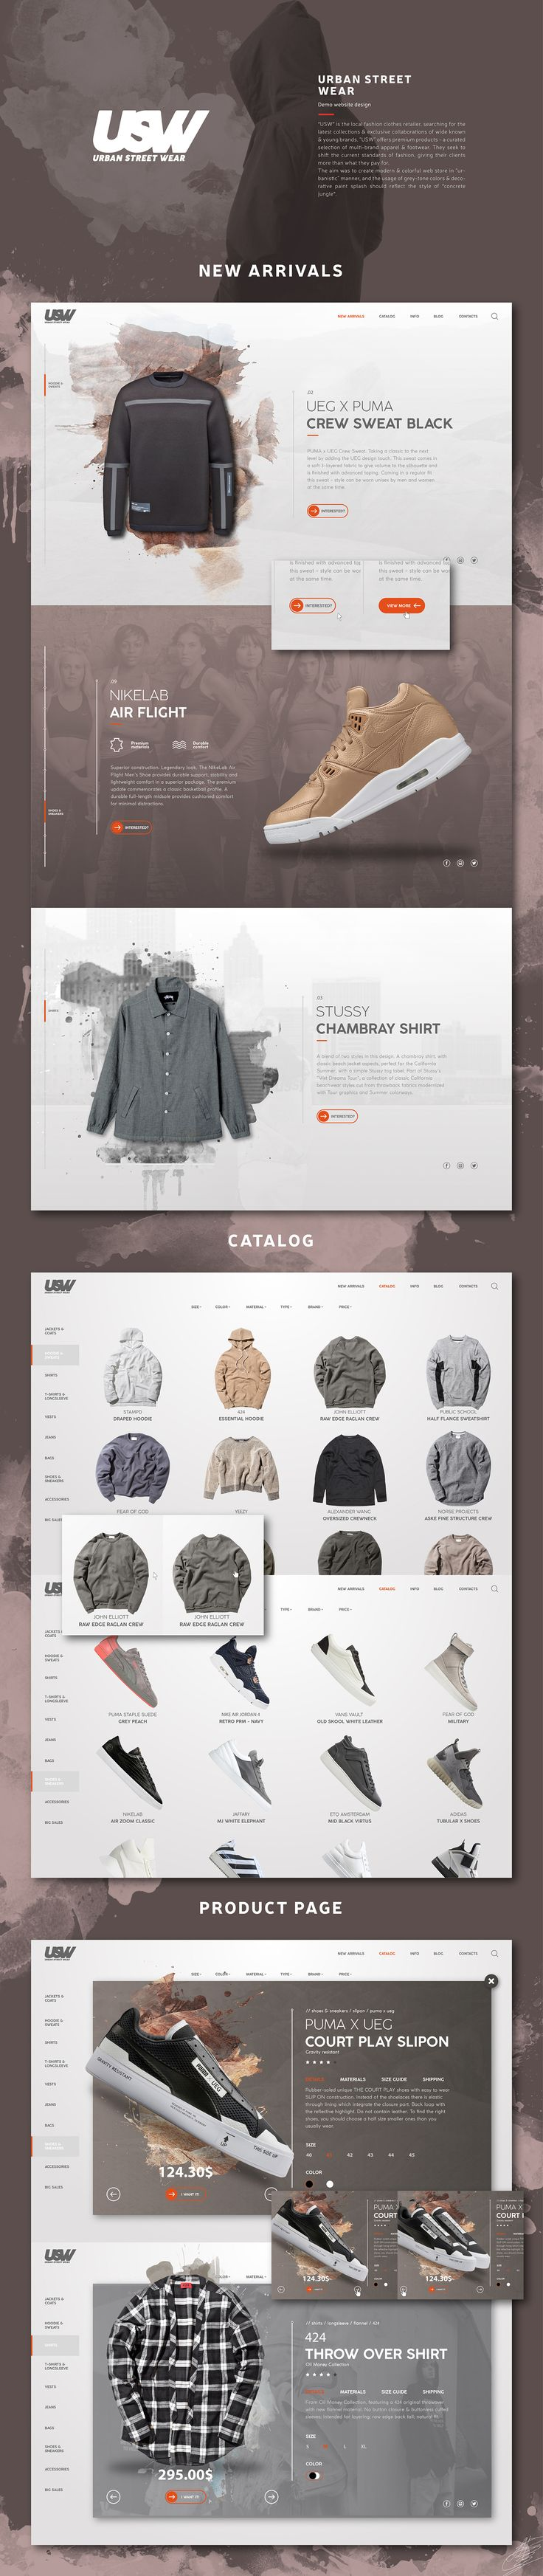 Urban Street Wear SIte on Behance